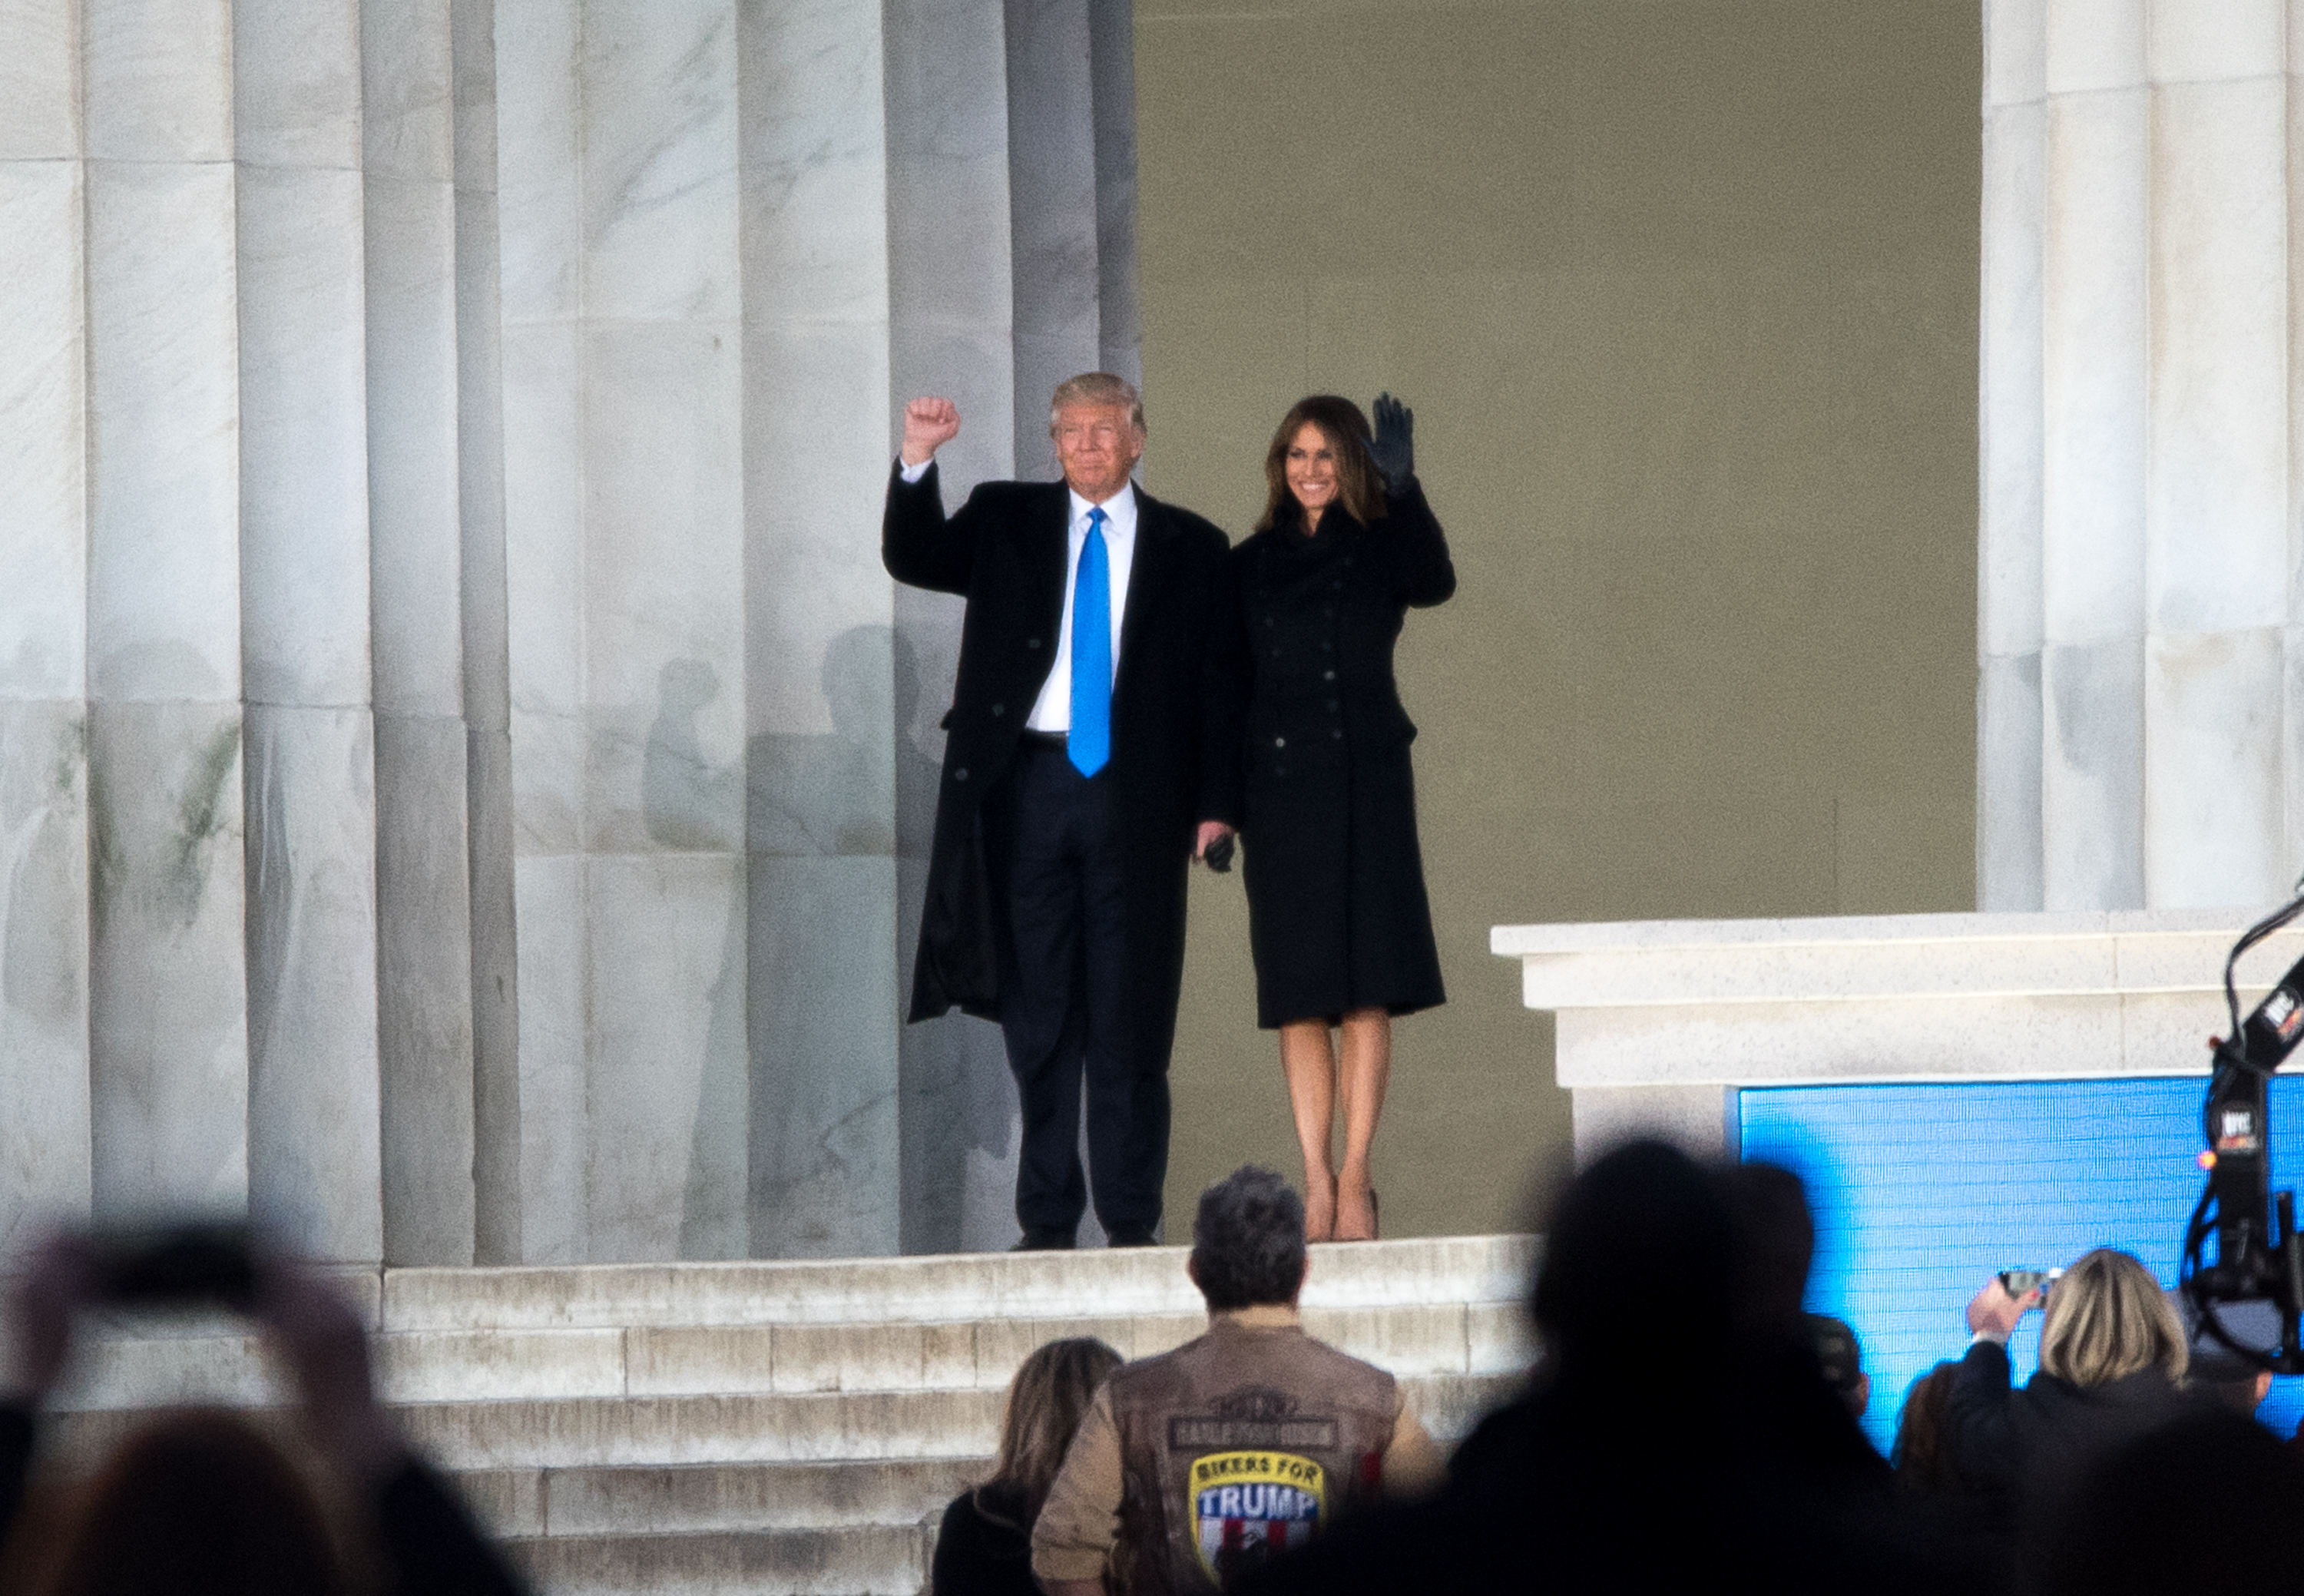 Donald Trump Presidential Inauguration Welcome Concert